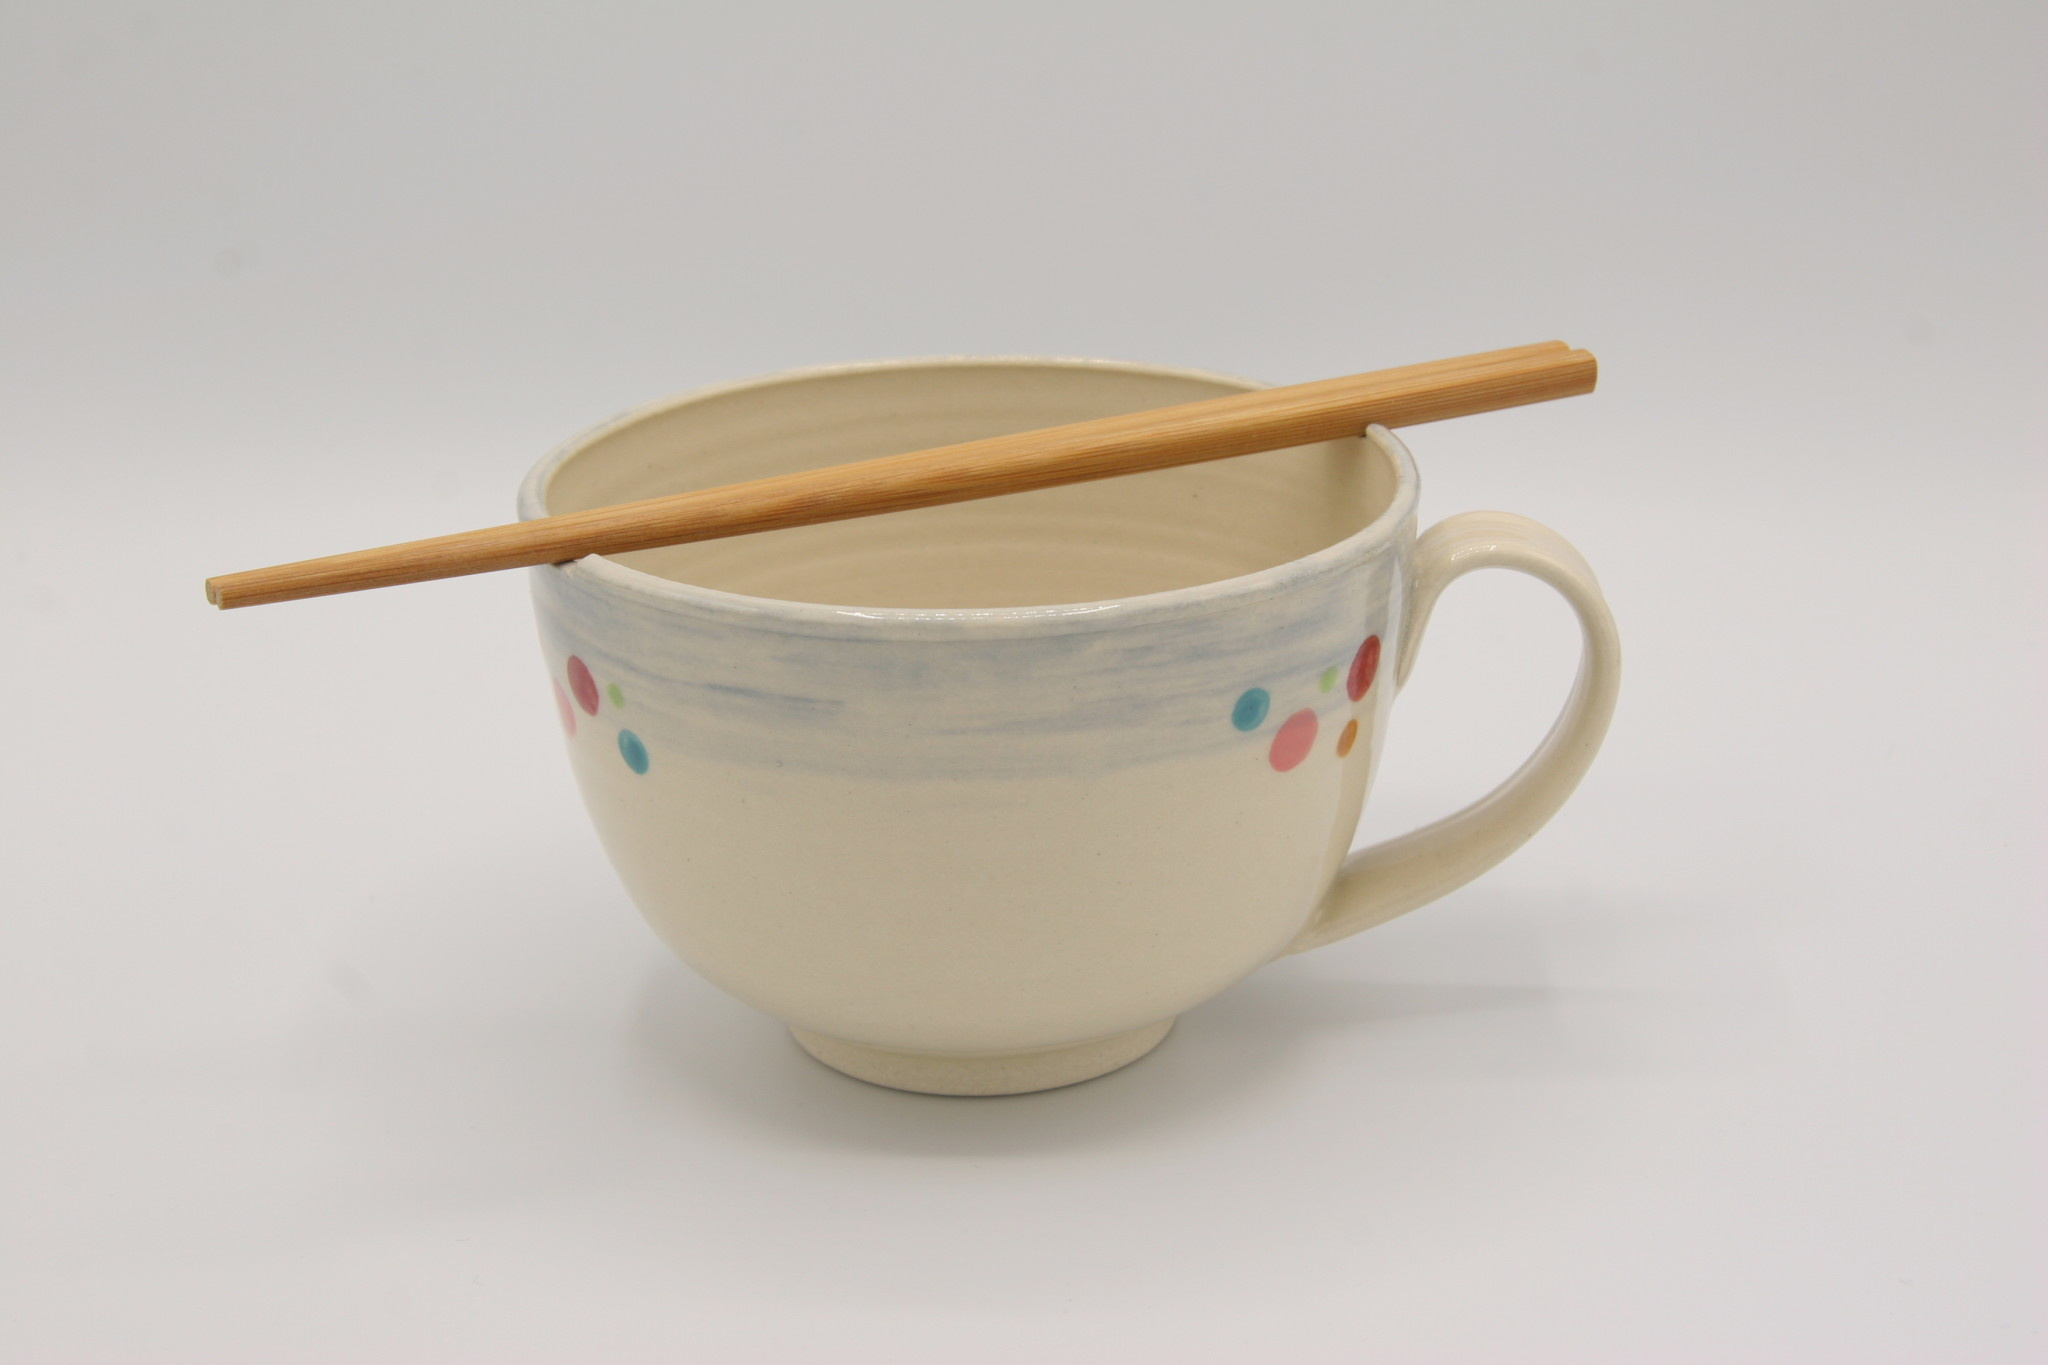 Carolyn DiPasquale - CCBC Large Noodle Bowl with Handle & Chopsticks